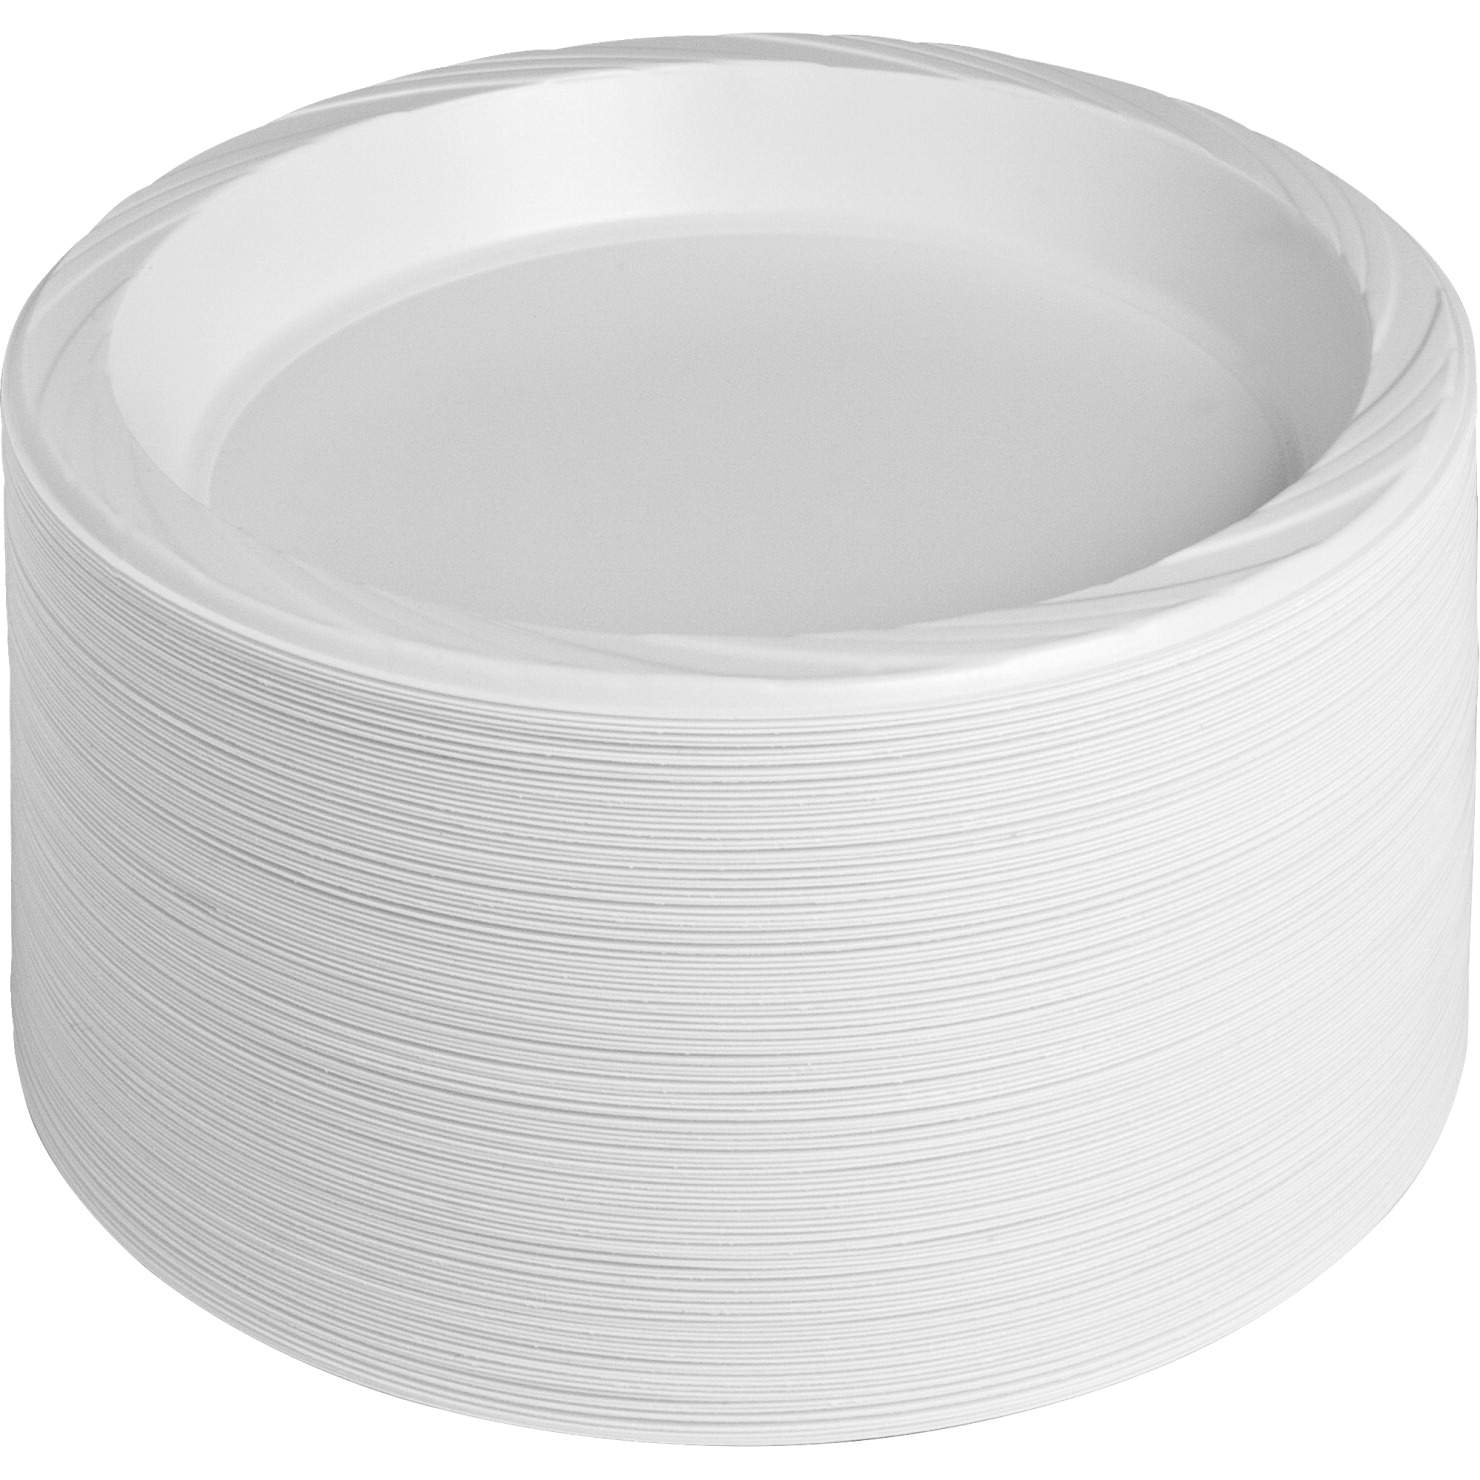 Genuine Joe Disposable/Reusable Round Plastic Plate, 10-1/4 W in, White, Pack of 125